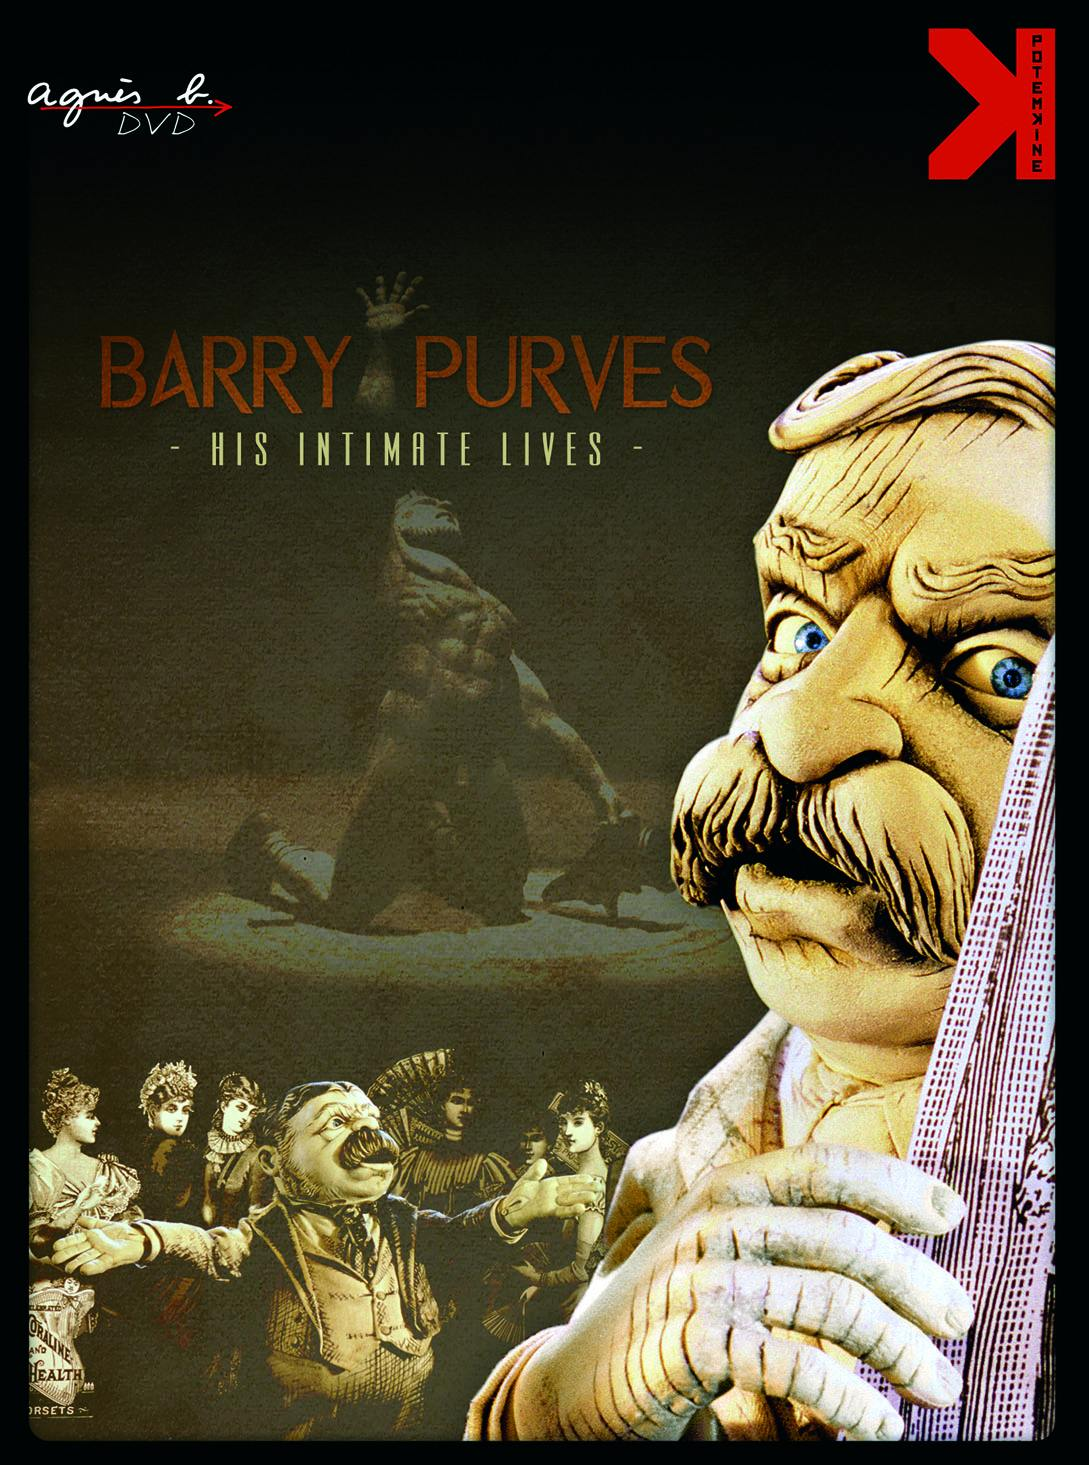 Barry jc purves - dvd  his intimate lives